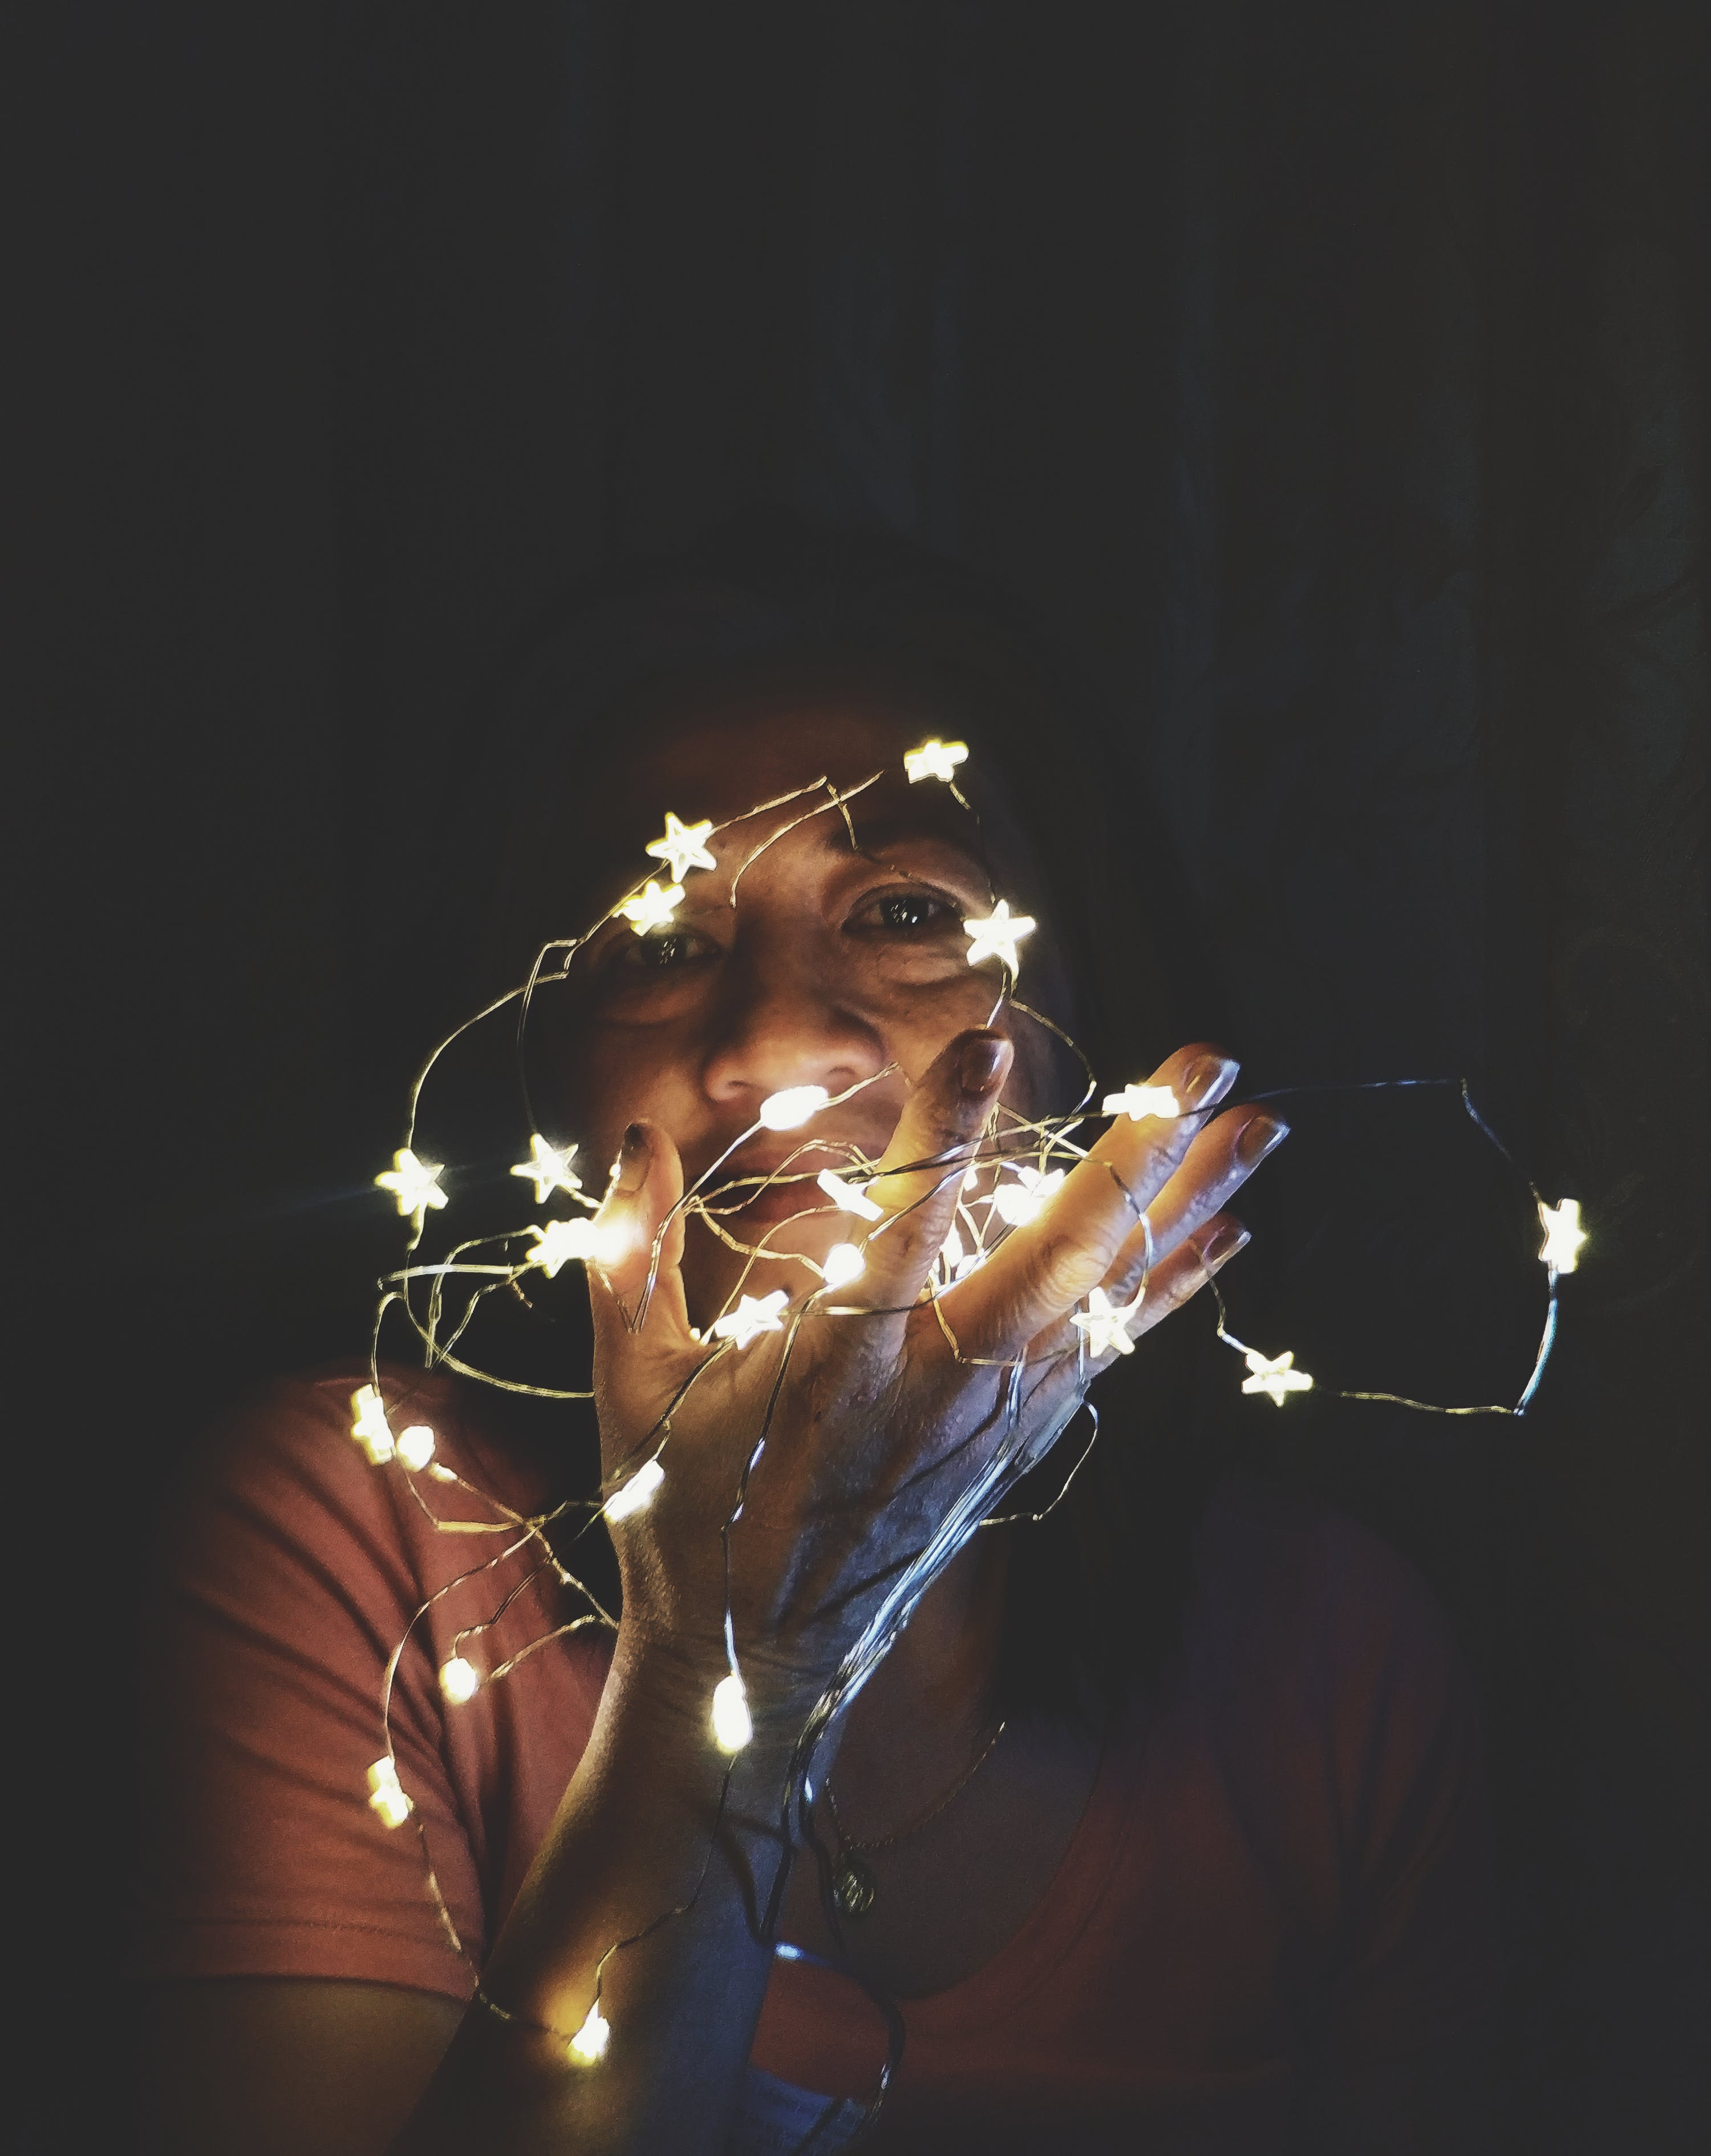 Close-Up Photo of a Woman Holding String Lights